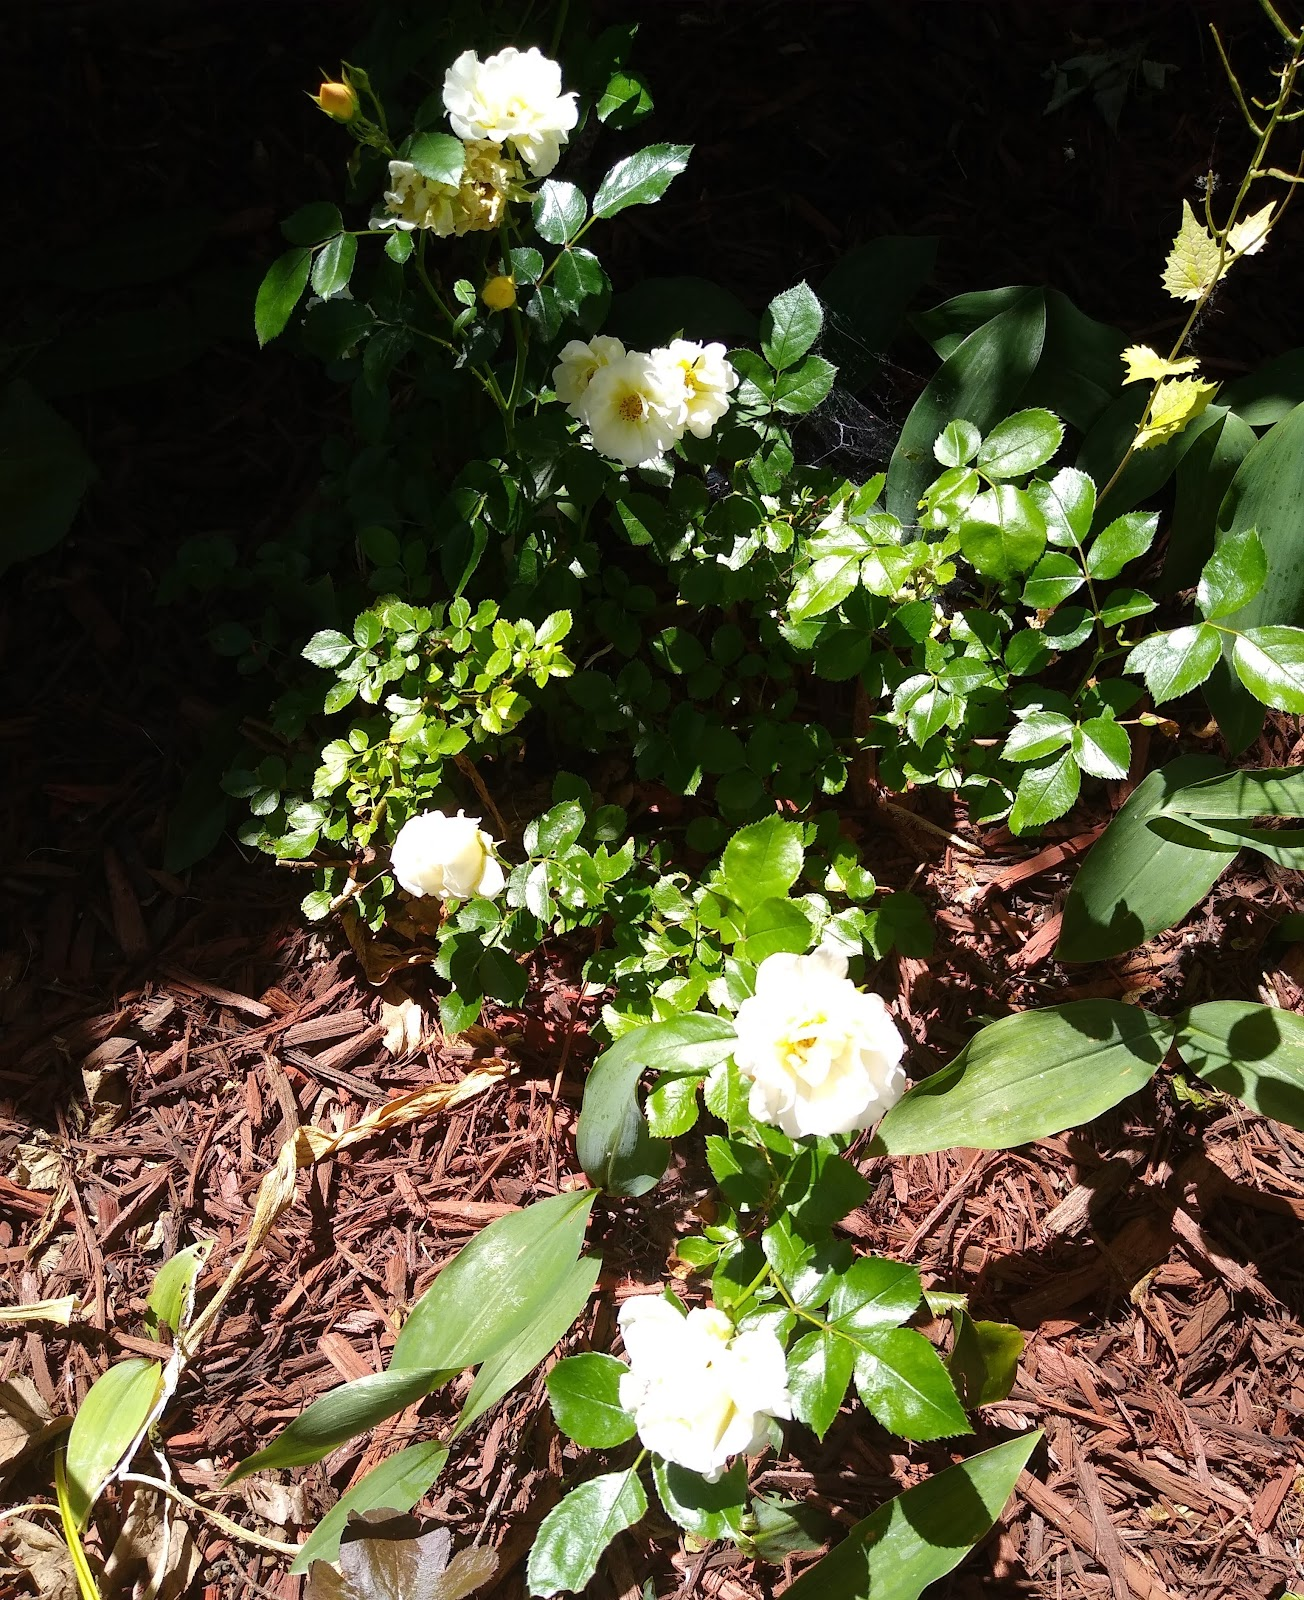 sun washed white roses